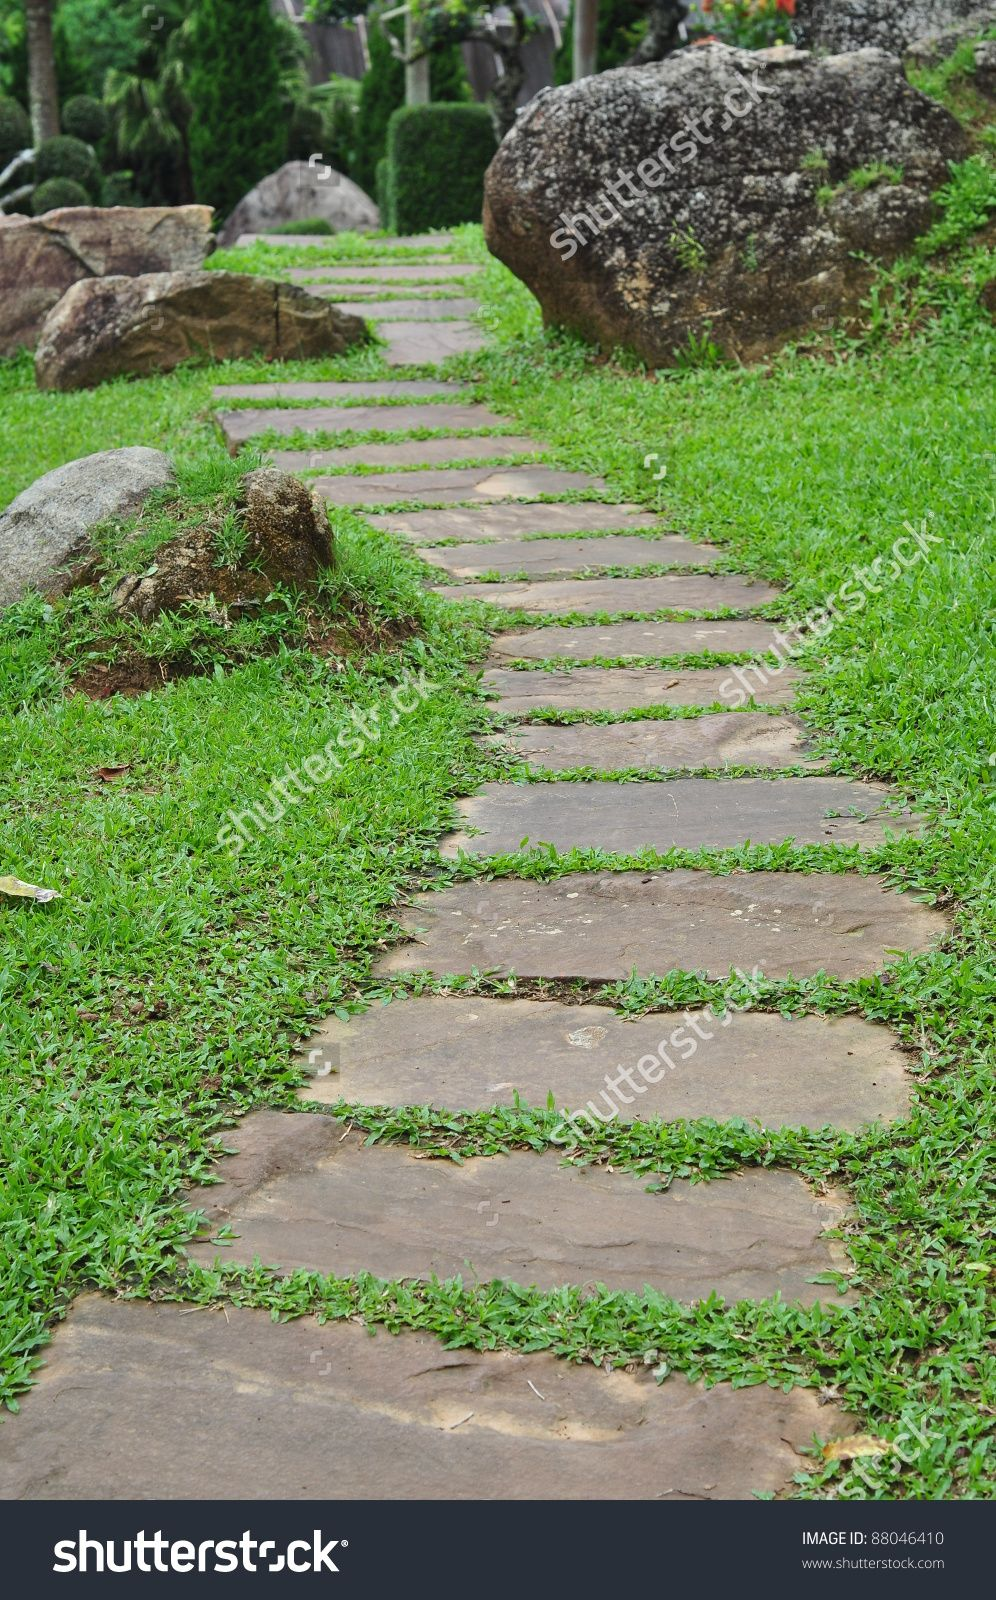 Pathways amp steppers sisson landscapes - Stone Path Google Search Path Pinterest Gardens Photos And Pictures